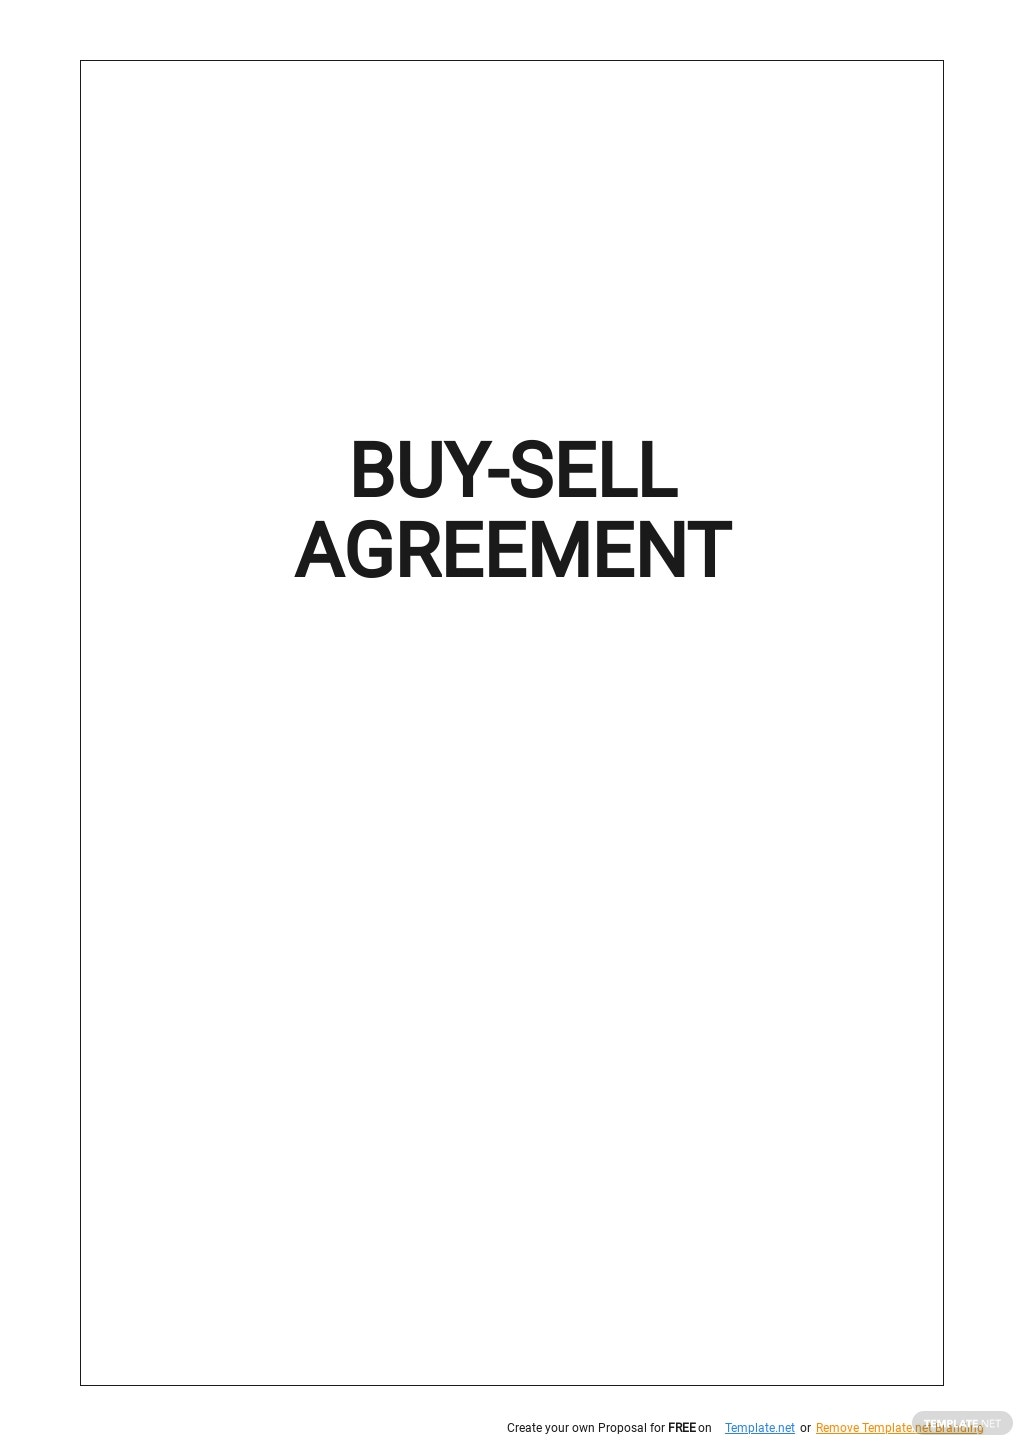 Simple Buy Sell Agreement Template.jpe